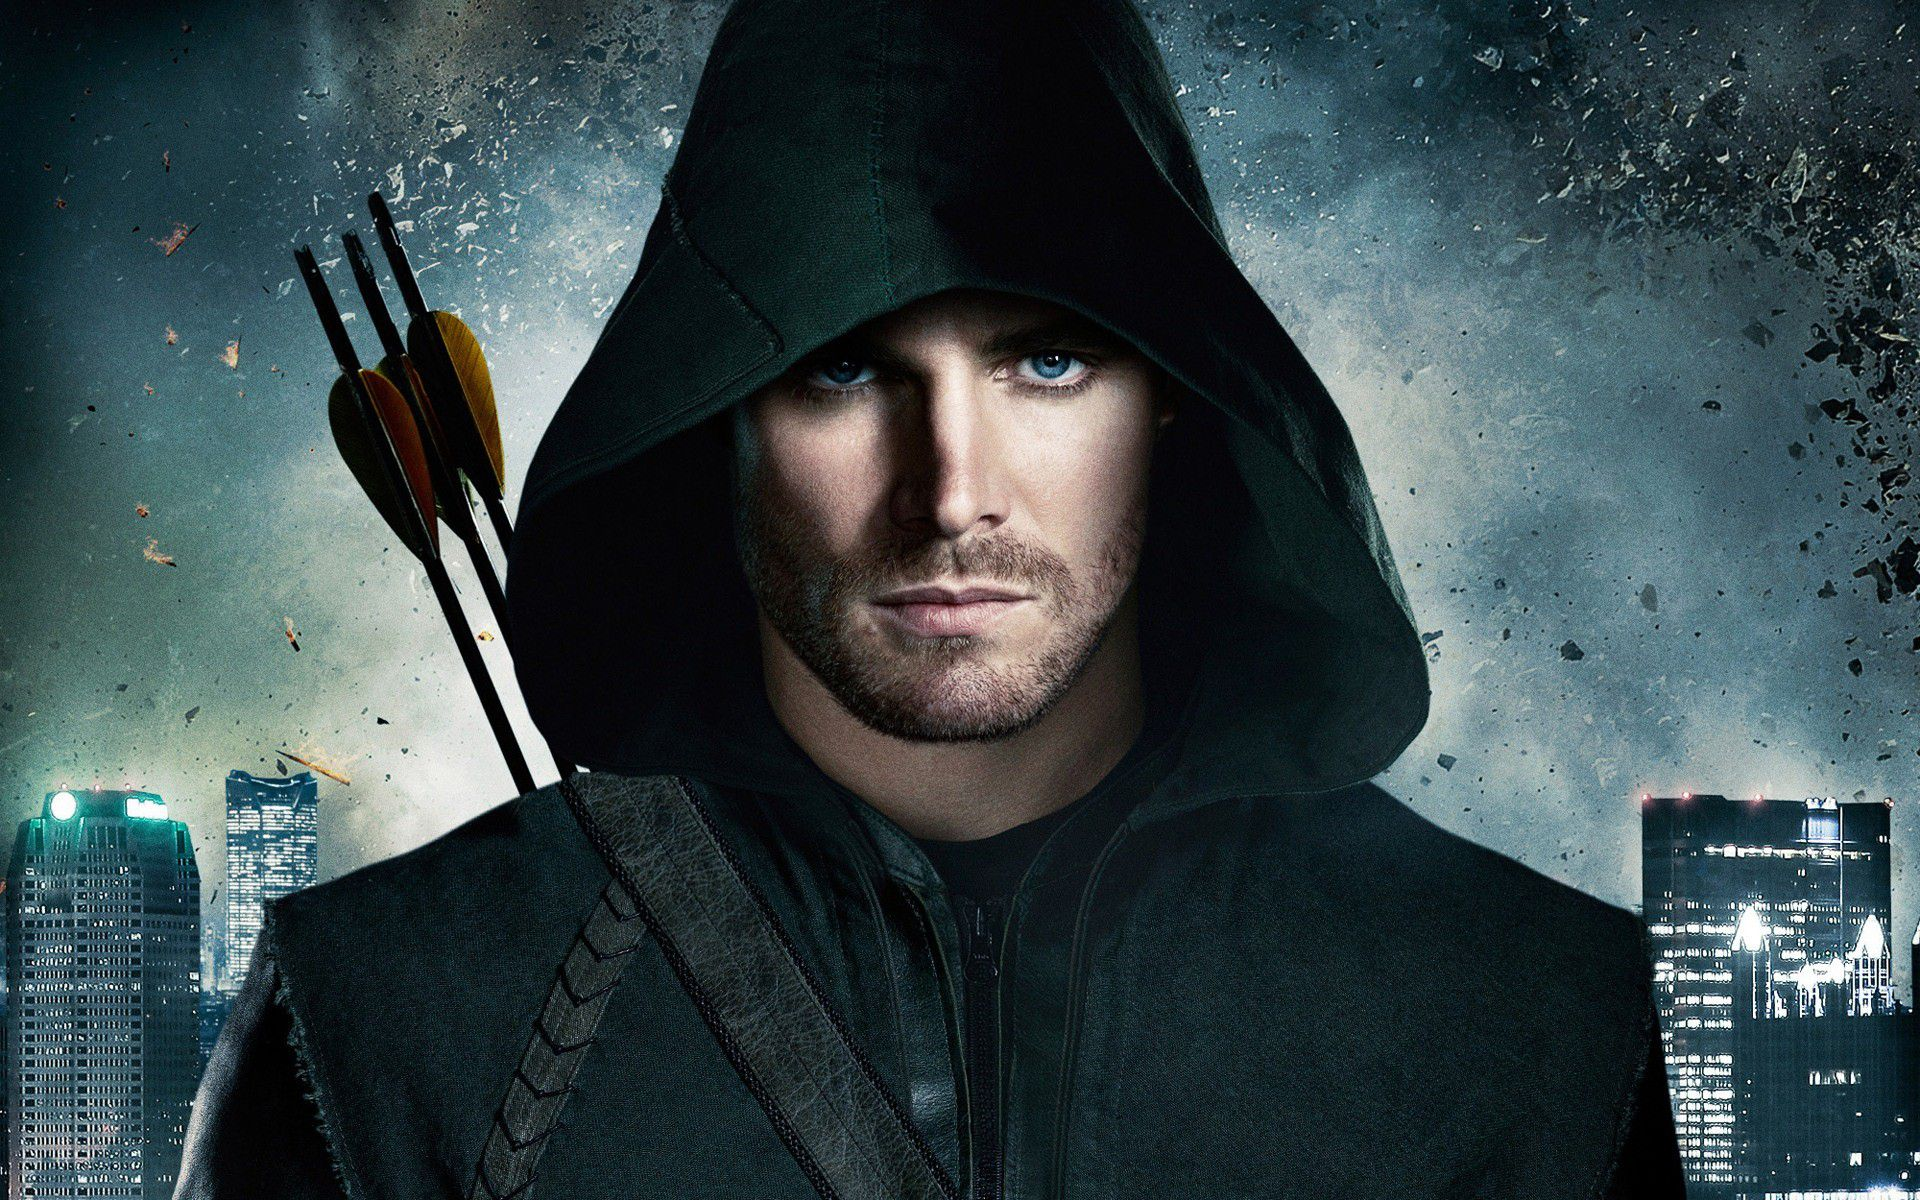 Sneak Peek's (Already!) for Season 7 of 'Arrow'